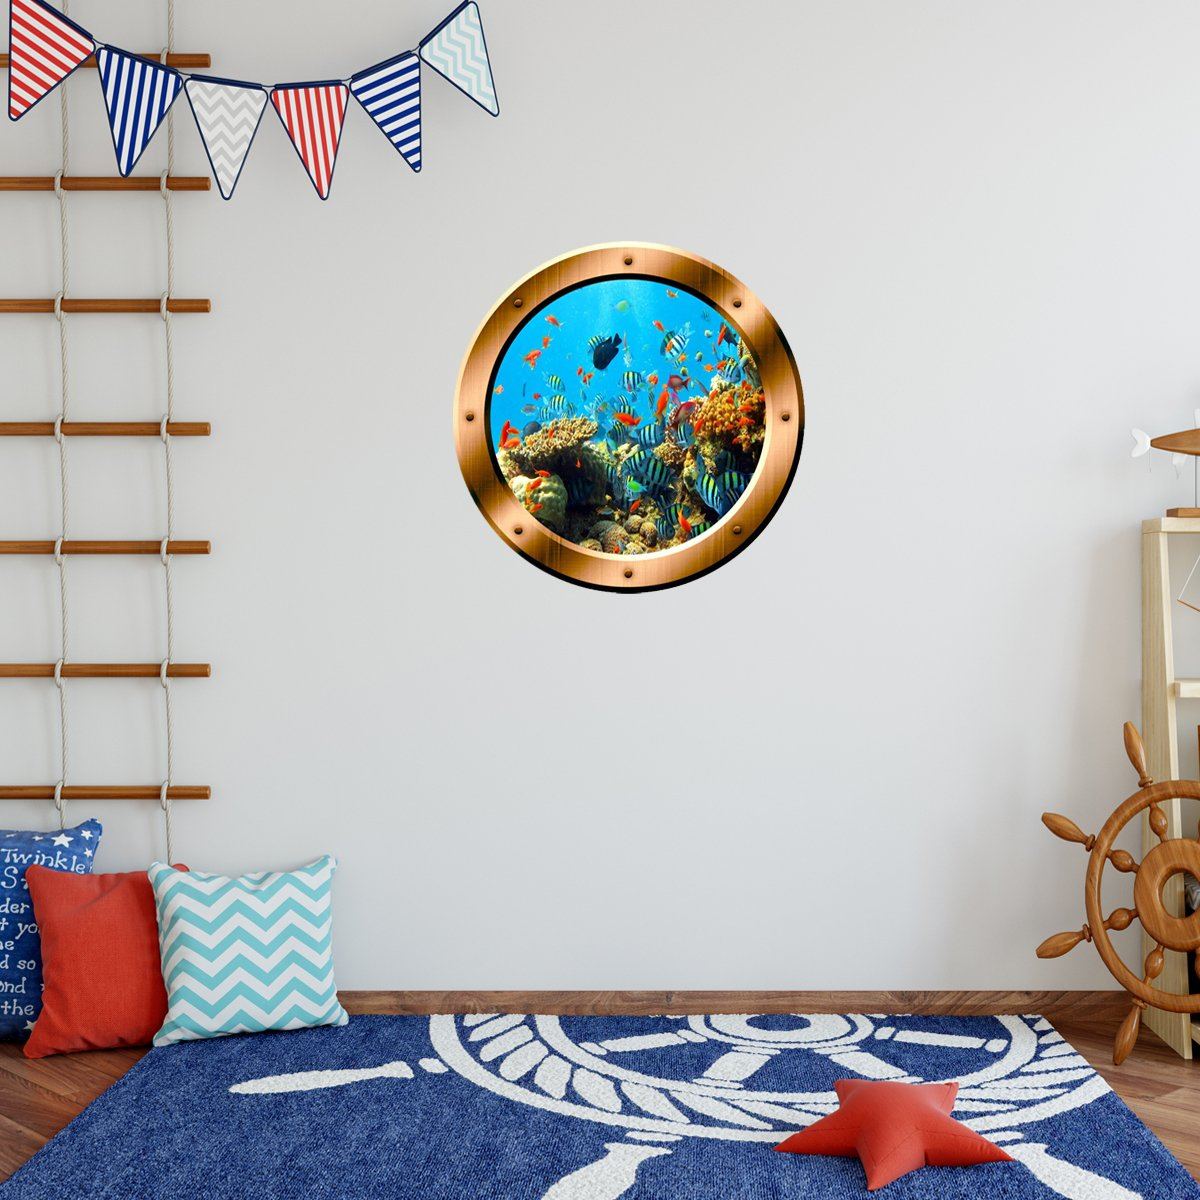 VWAQ Coral Reef Wall Sticker Porthole Underwater School Of Fish Wall Decal Home Decor - BP19 - VWAQ Vinyl Wall Art Quotes and Prints